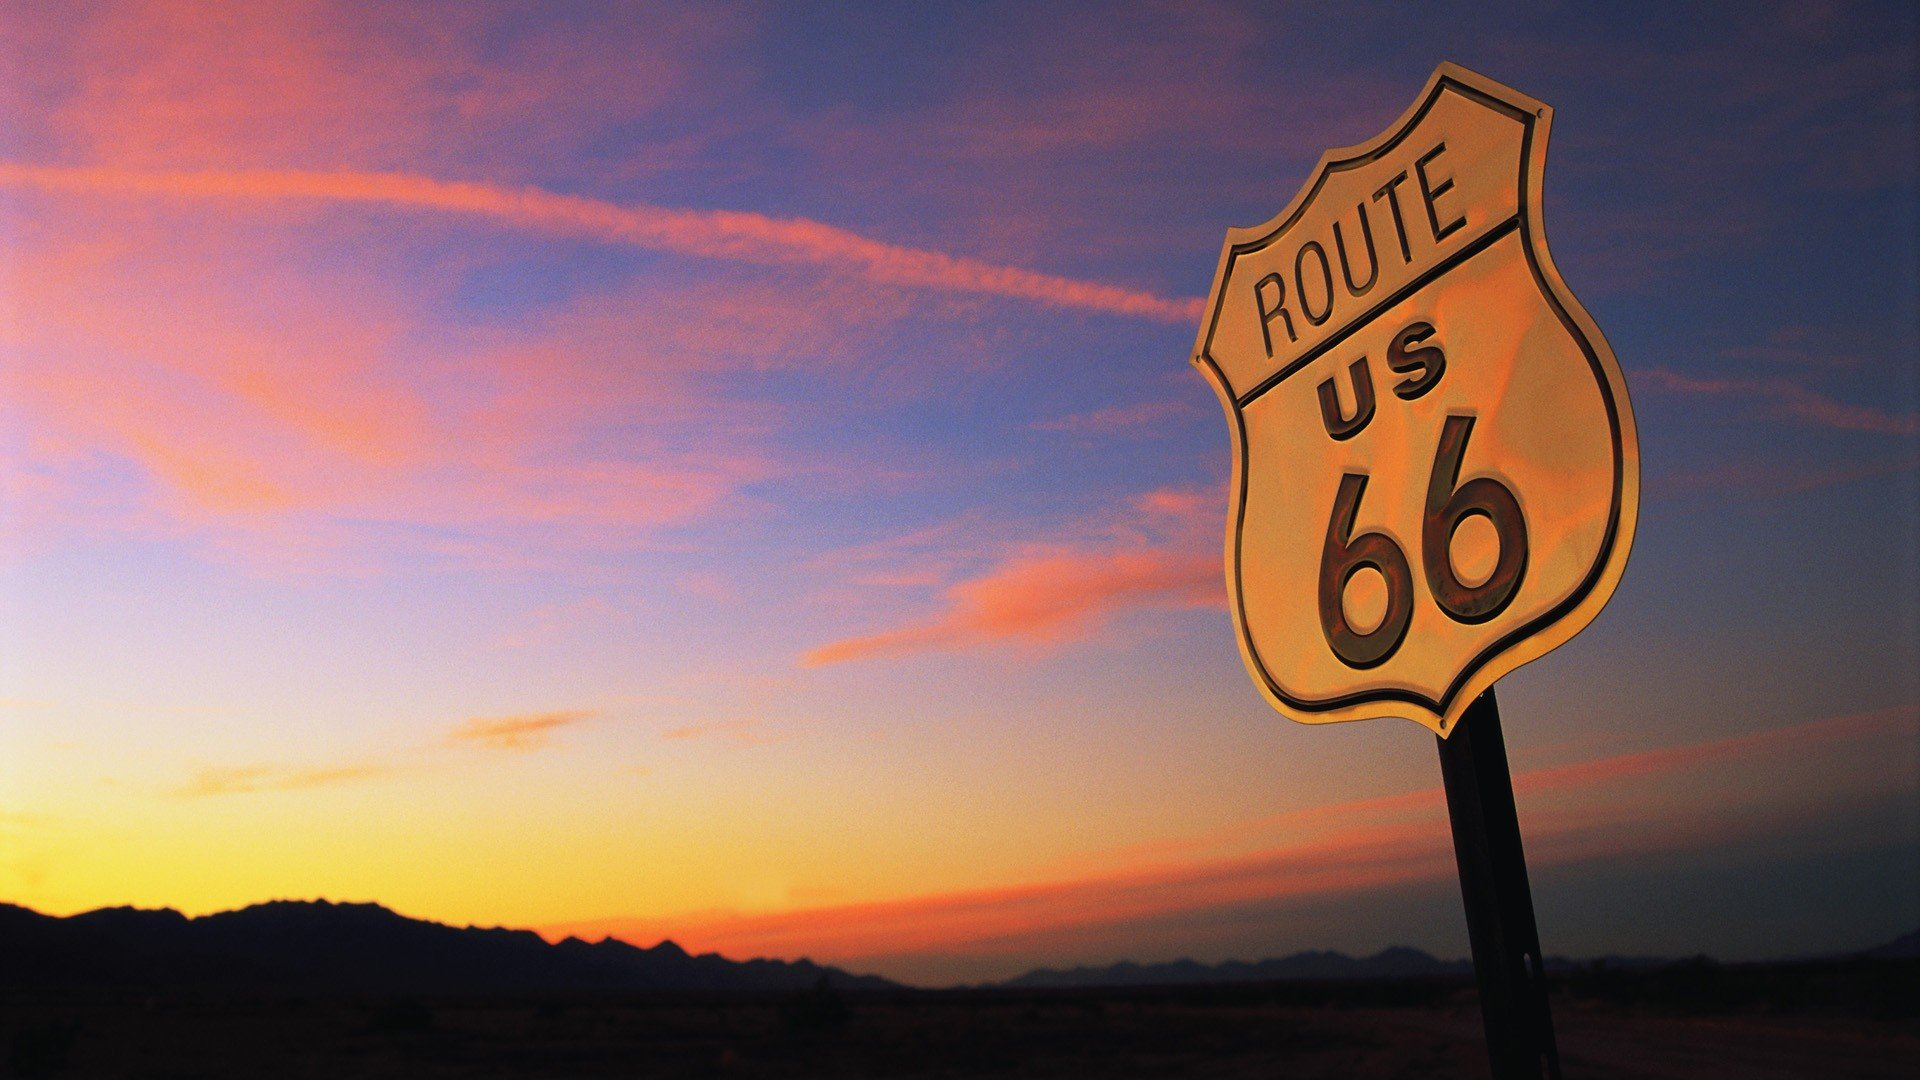 route 66 wallpaper 1920x1080 246700 wallpaperup. Black Bedroom Furniture Sets. Home Design Ideas